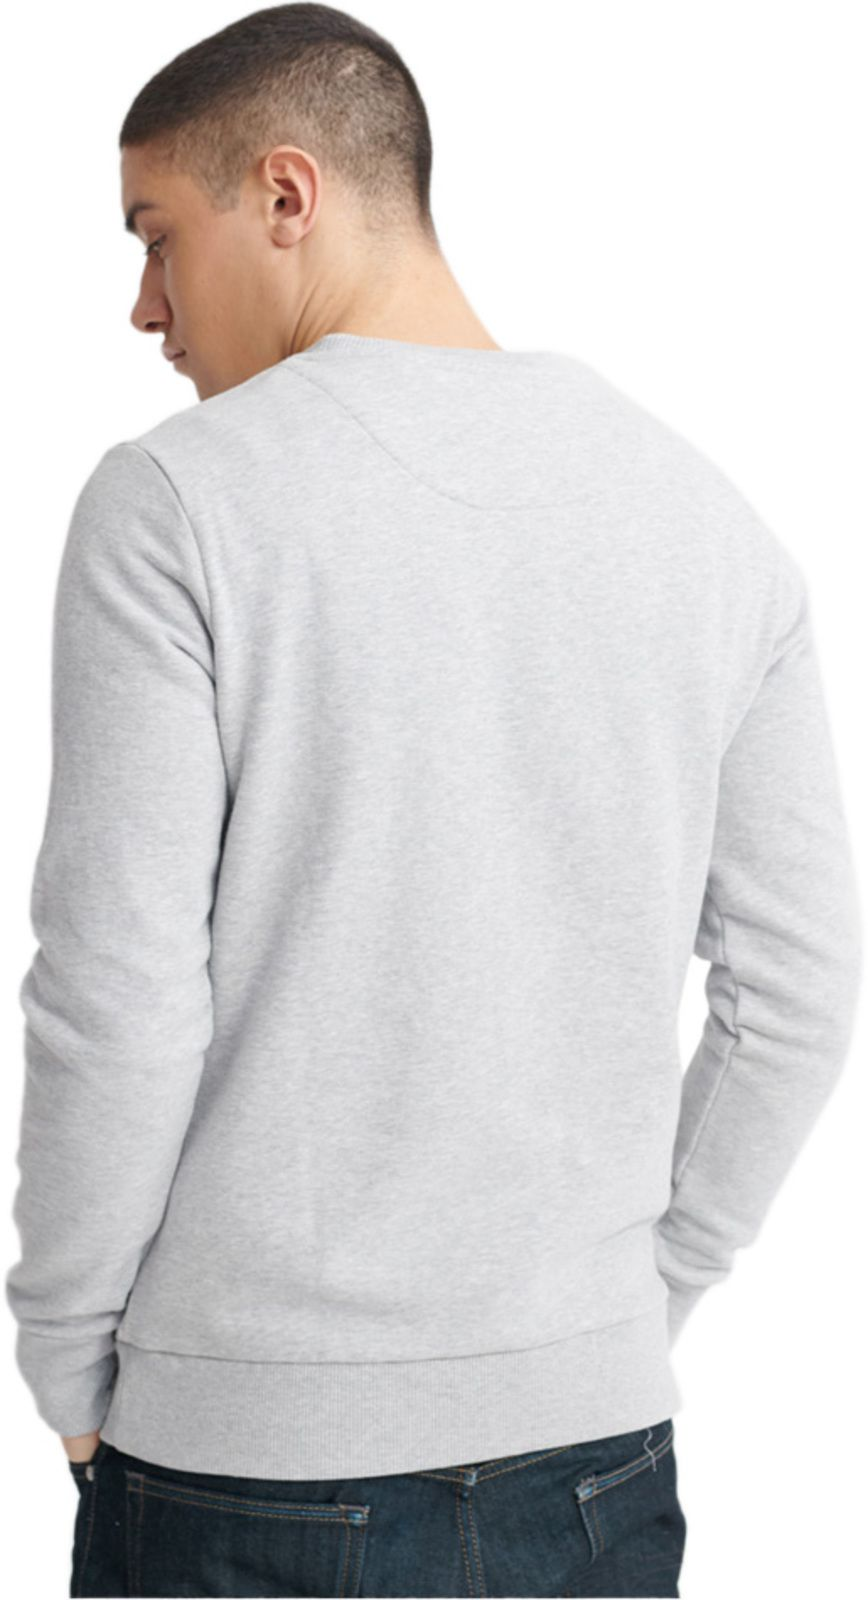 Superdry Vintage Logo Sweatshirt Grey